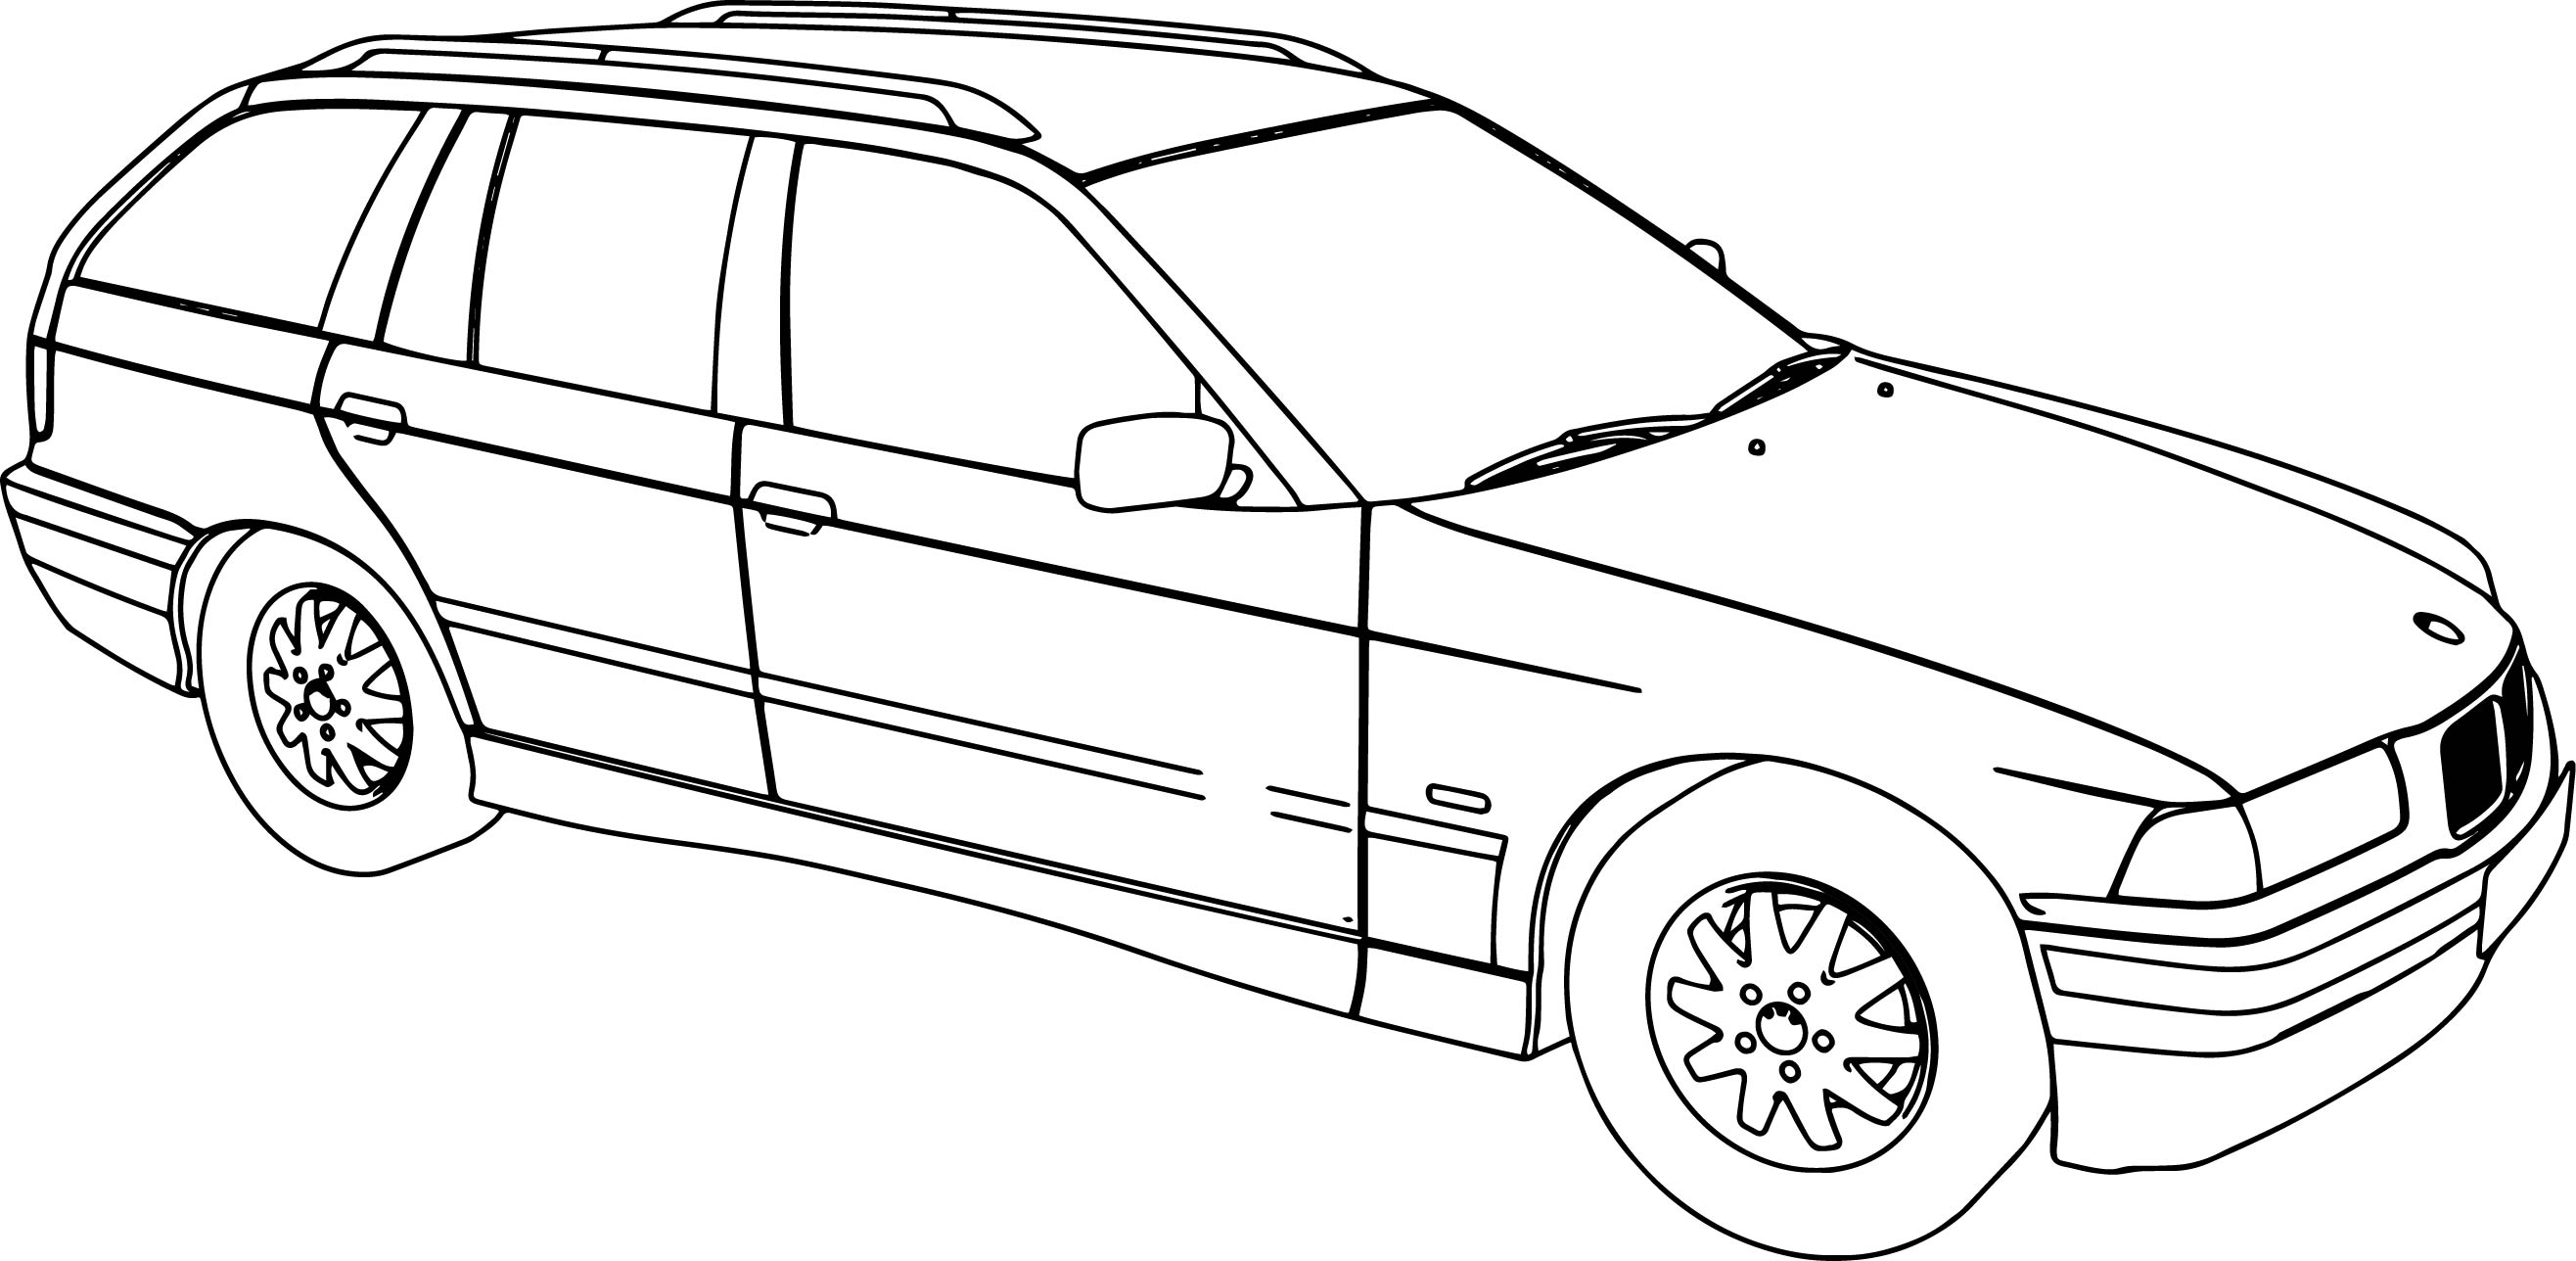 Bmw 318 Model Touring Car Coloring Page Wecoloringpage